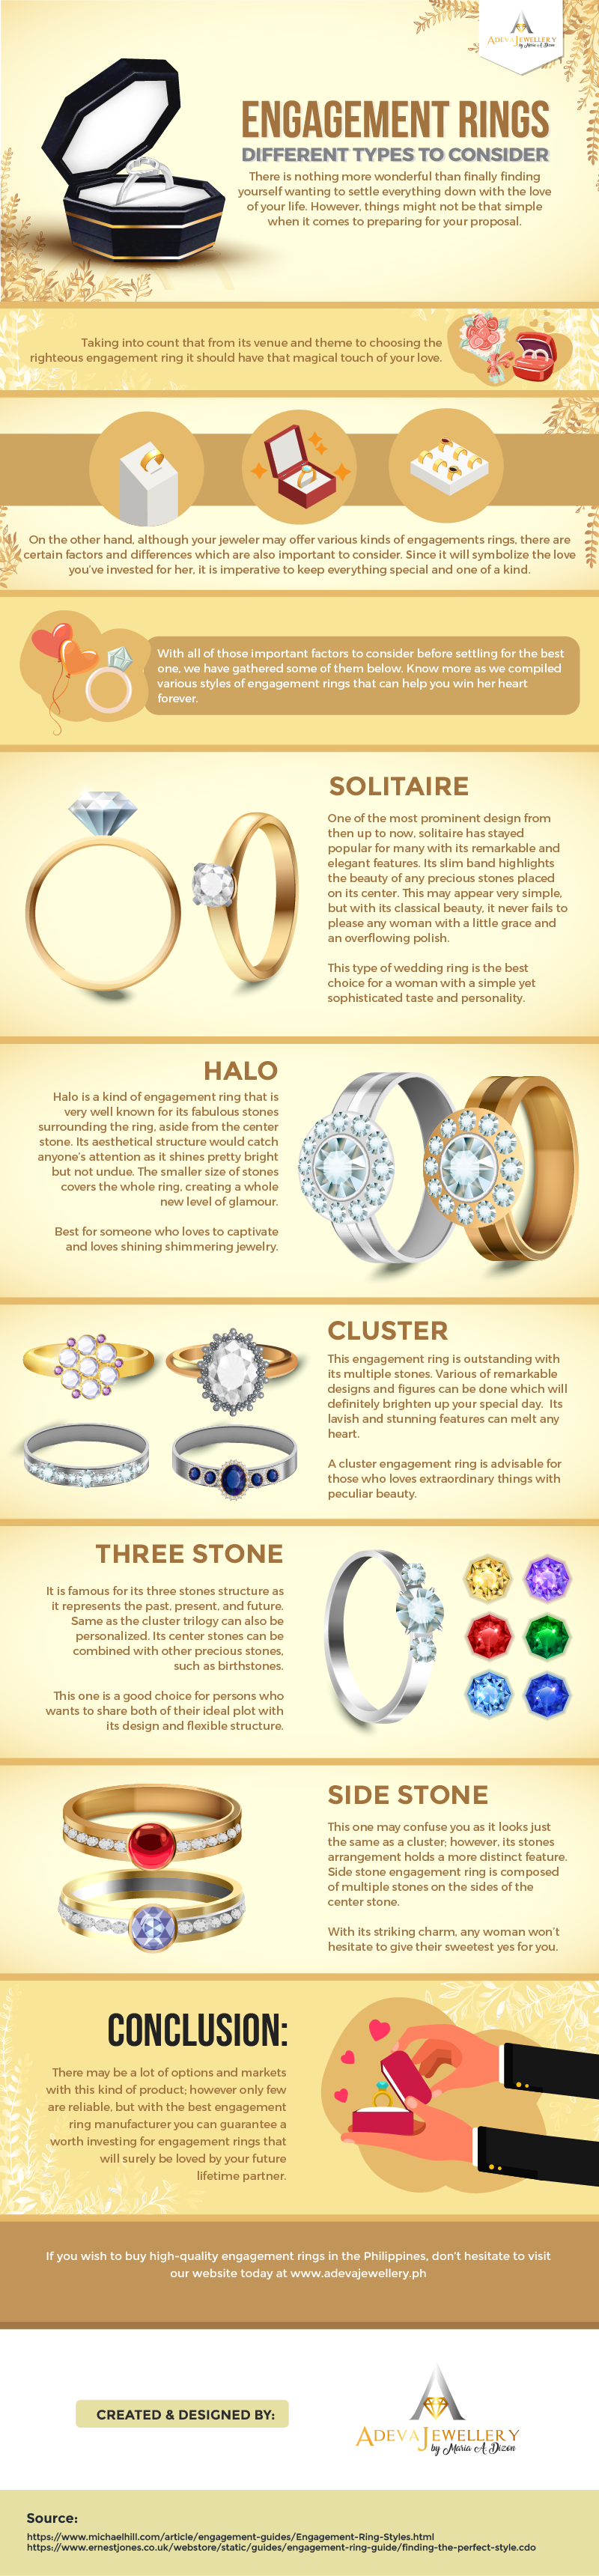 Engagement Rings: Different Types to Consider #infographic